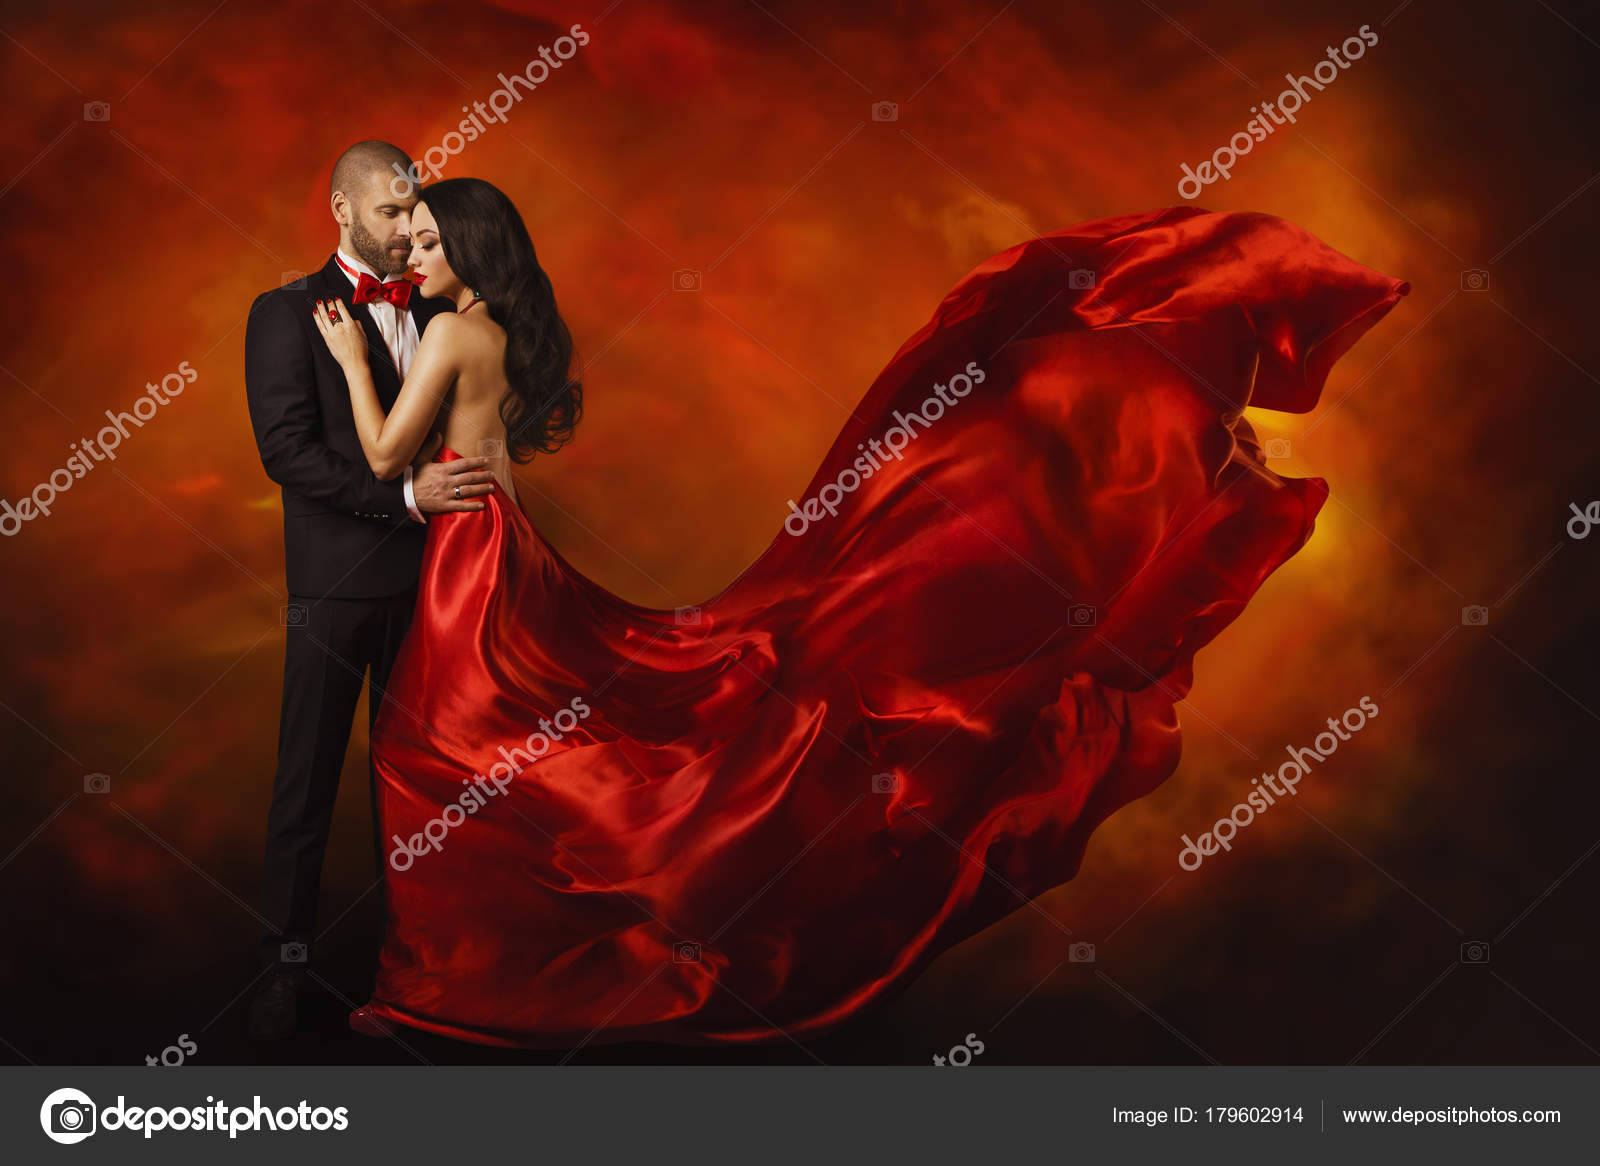 a0a605f495c2 Elegant Couple, Dancing Woman in Red Dress Fluttering Flying on wind and  Man in Black